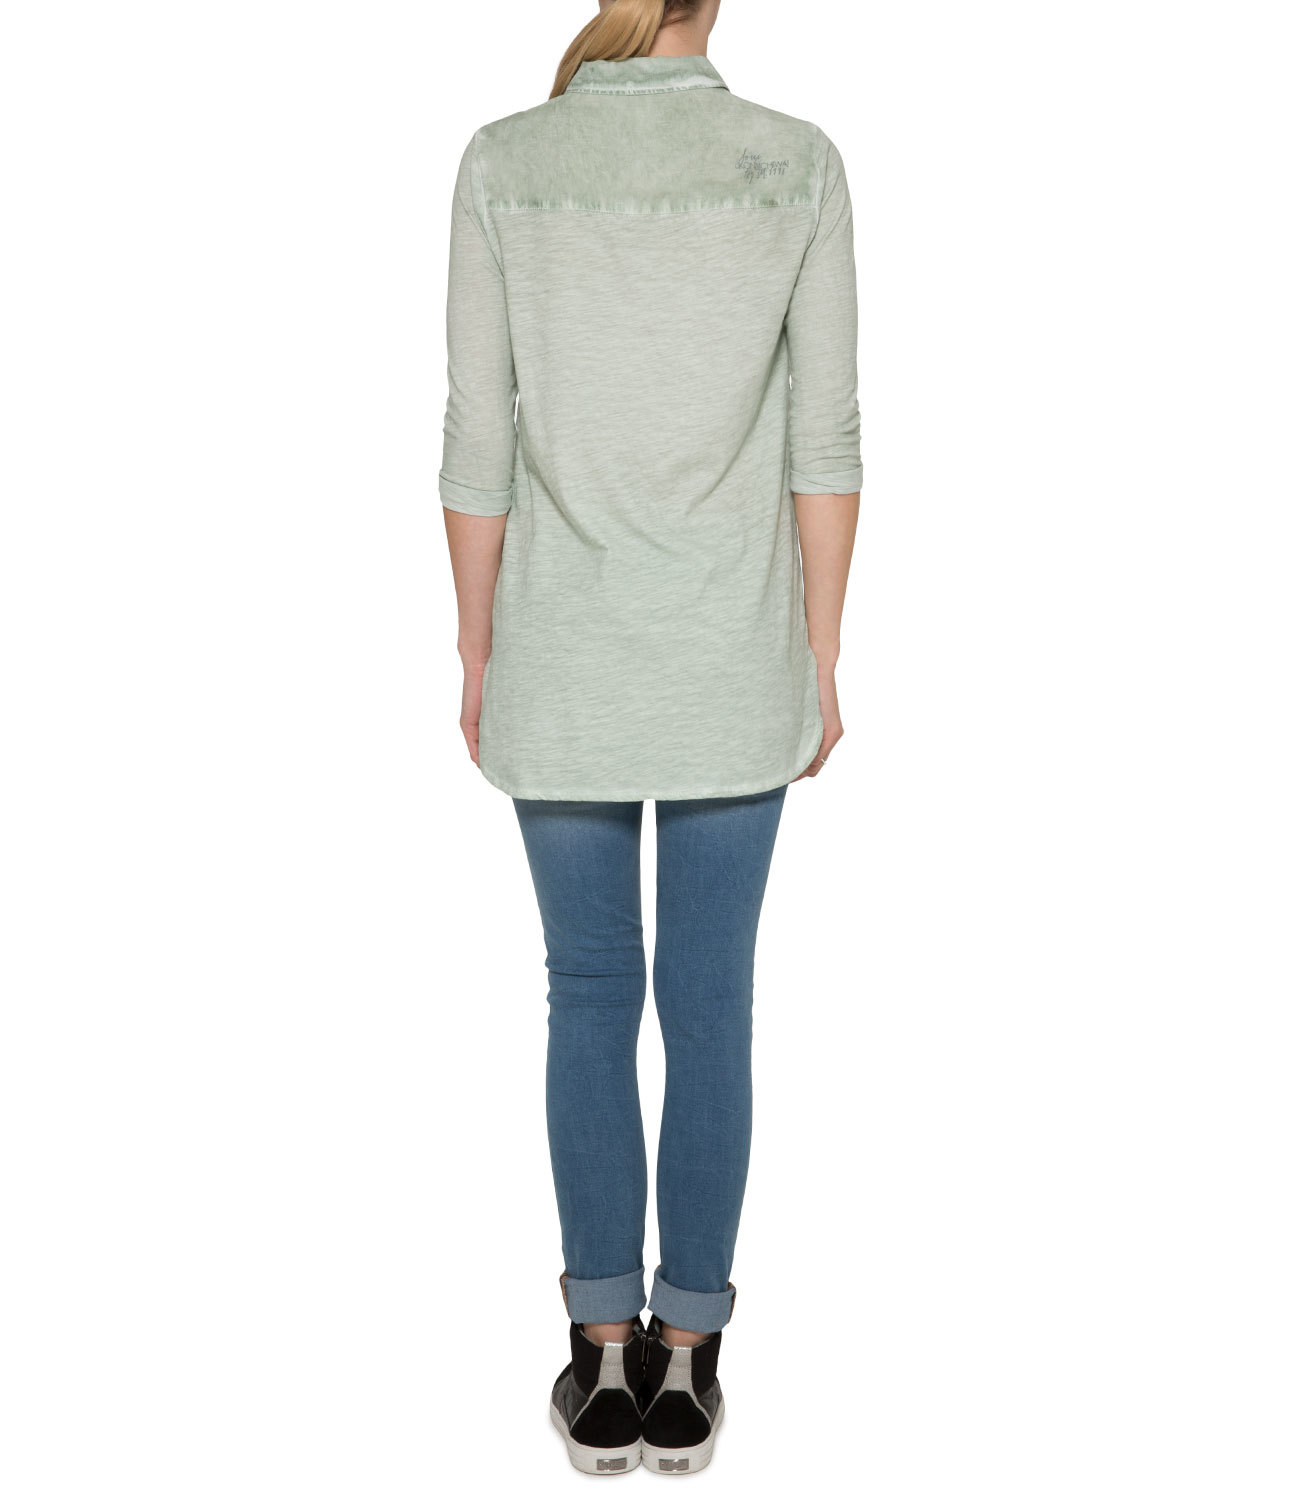 Long Bluse im Materialmix